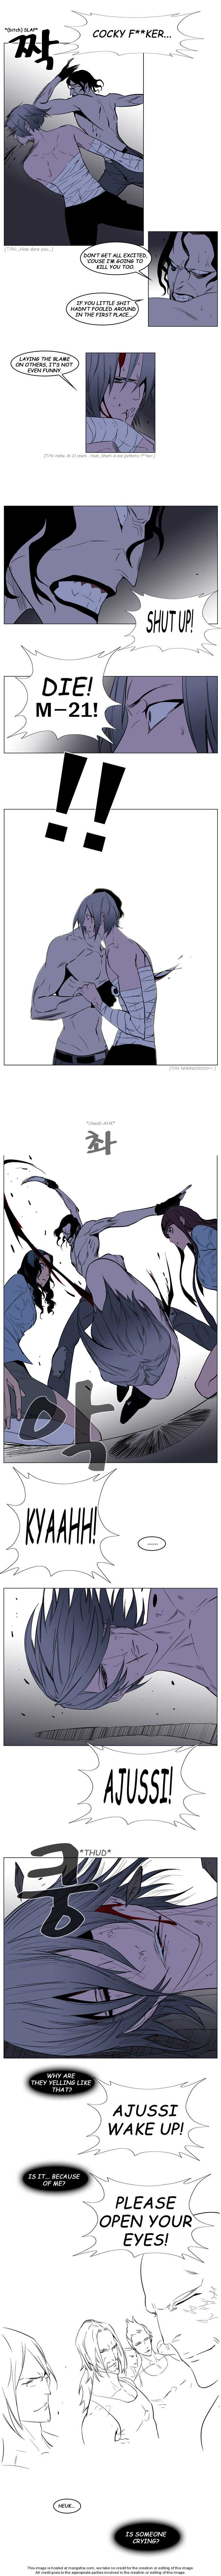 Noblesse 132 Page 2